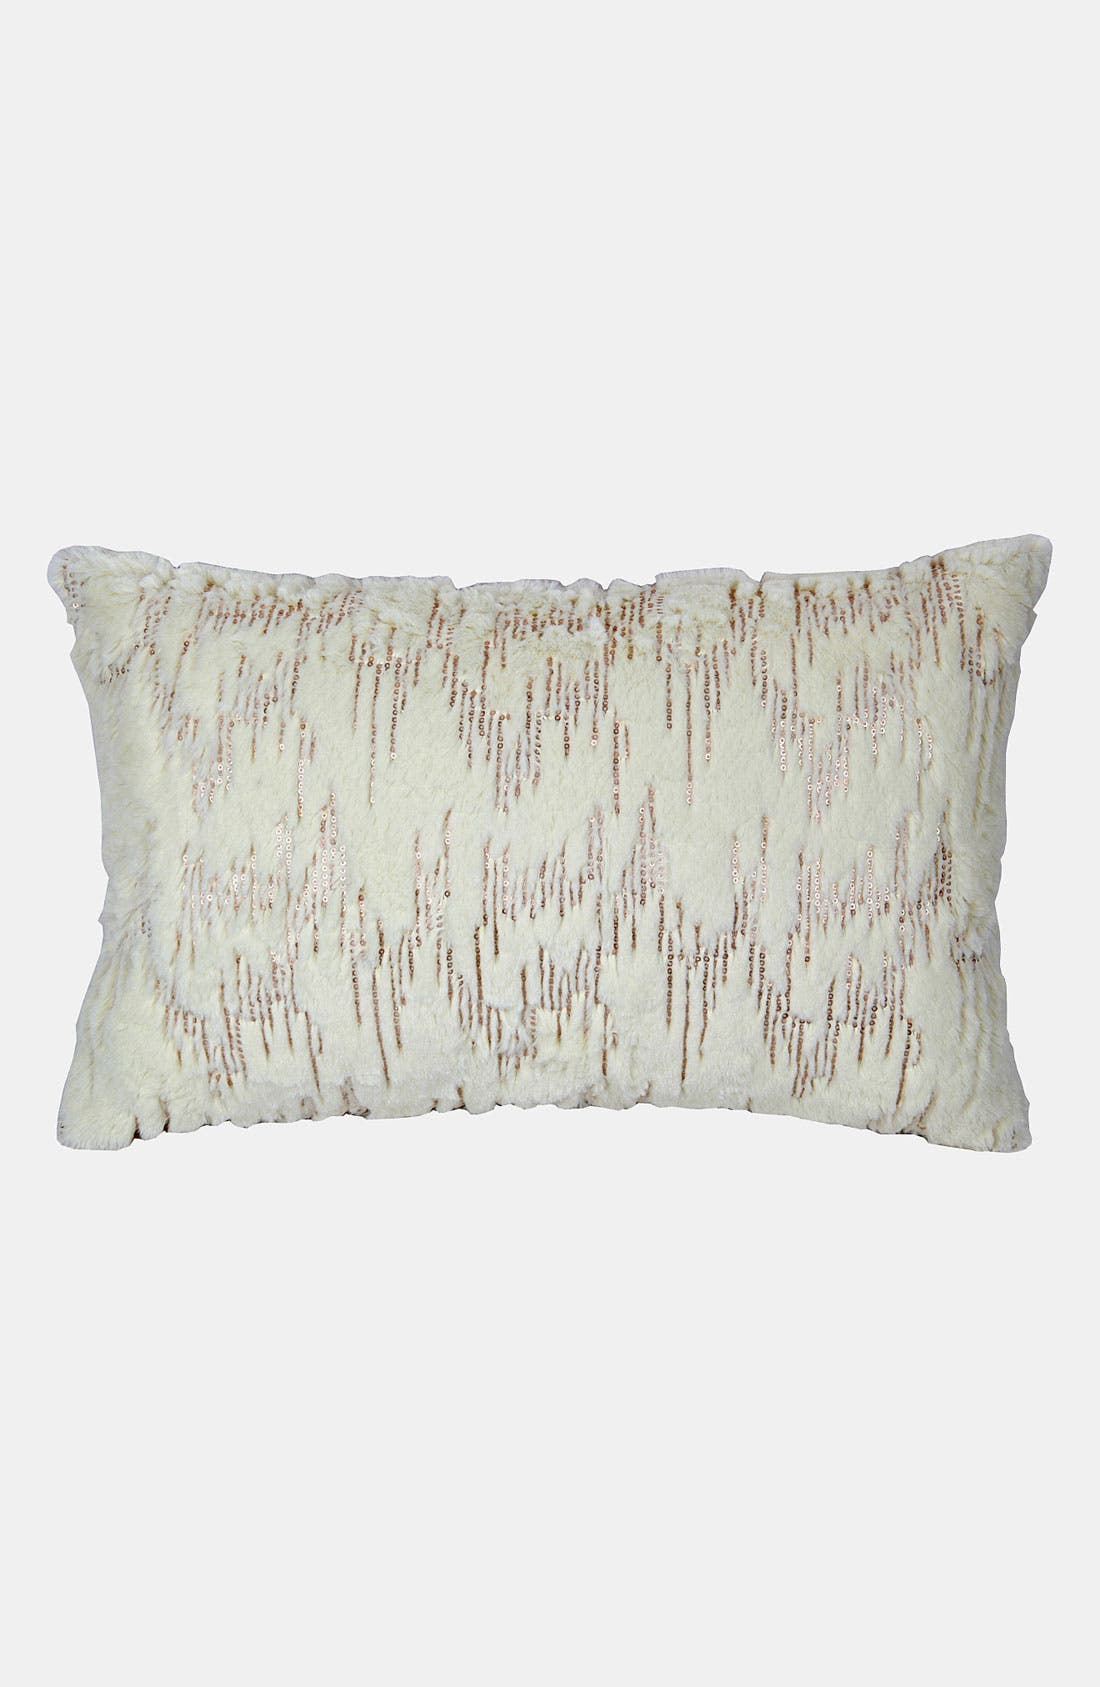 Alternate Image 1 Selected - Blissliving Home 'Chateau' Faux Fur Pillow (Online Only)